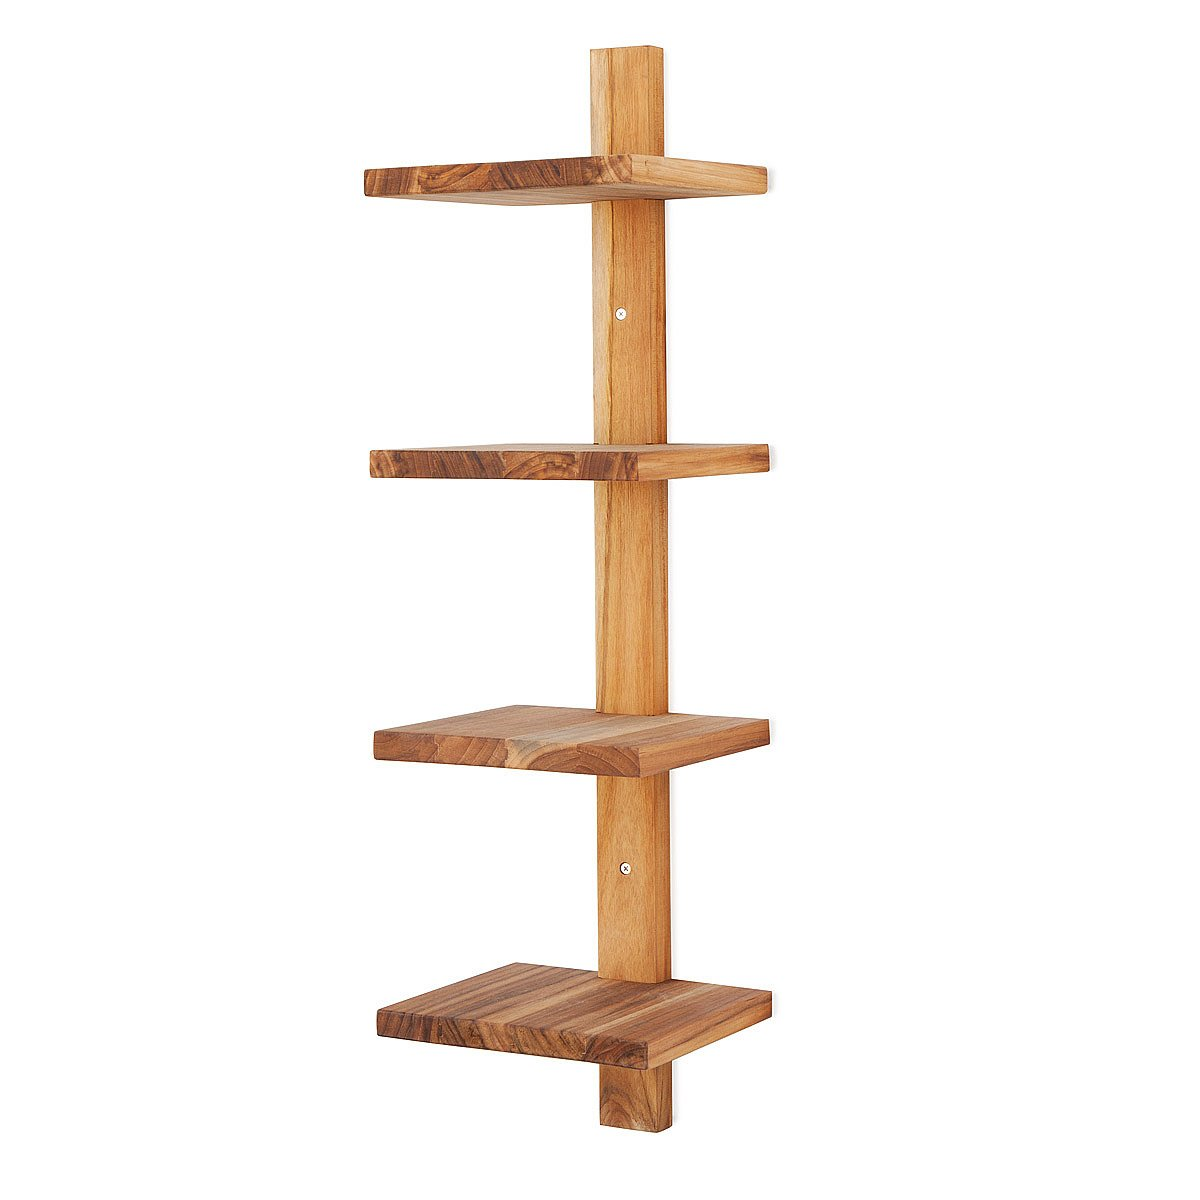 Wall Shelf minimalist teak wall shelf | vertical shelves, stacked shelves